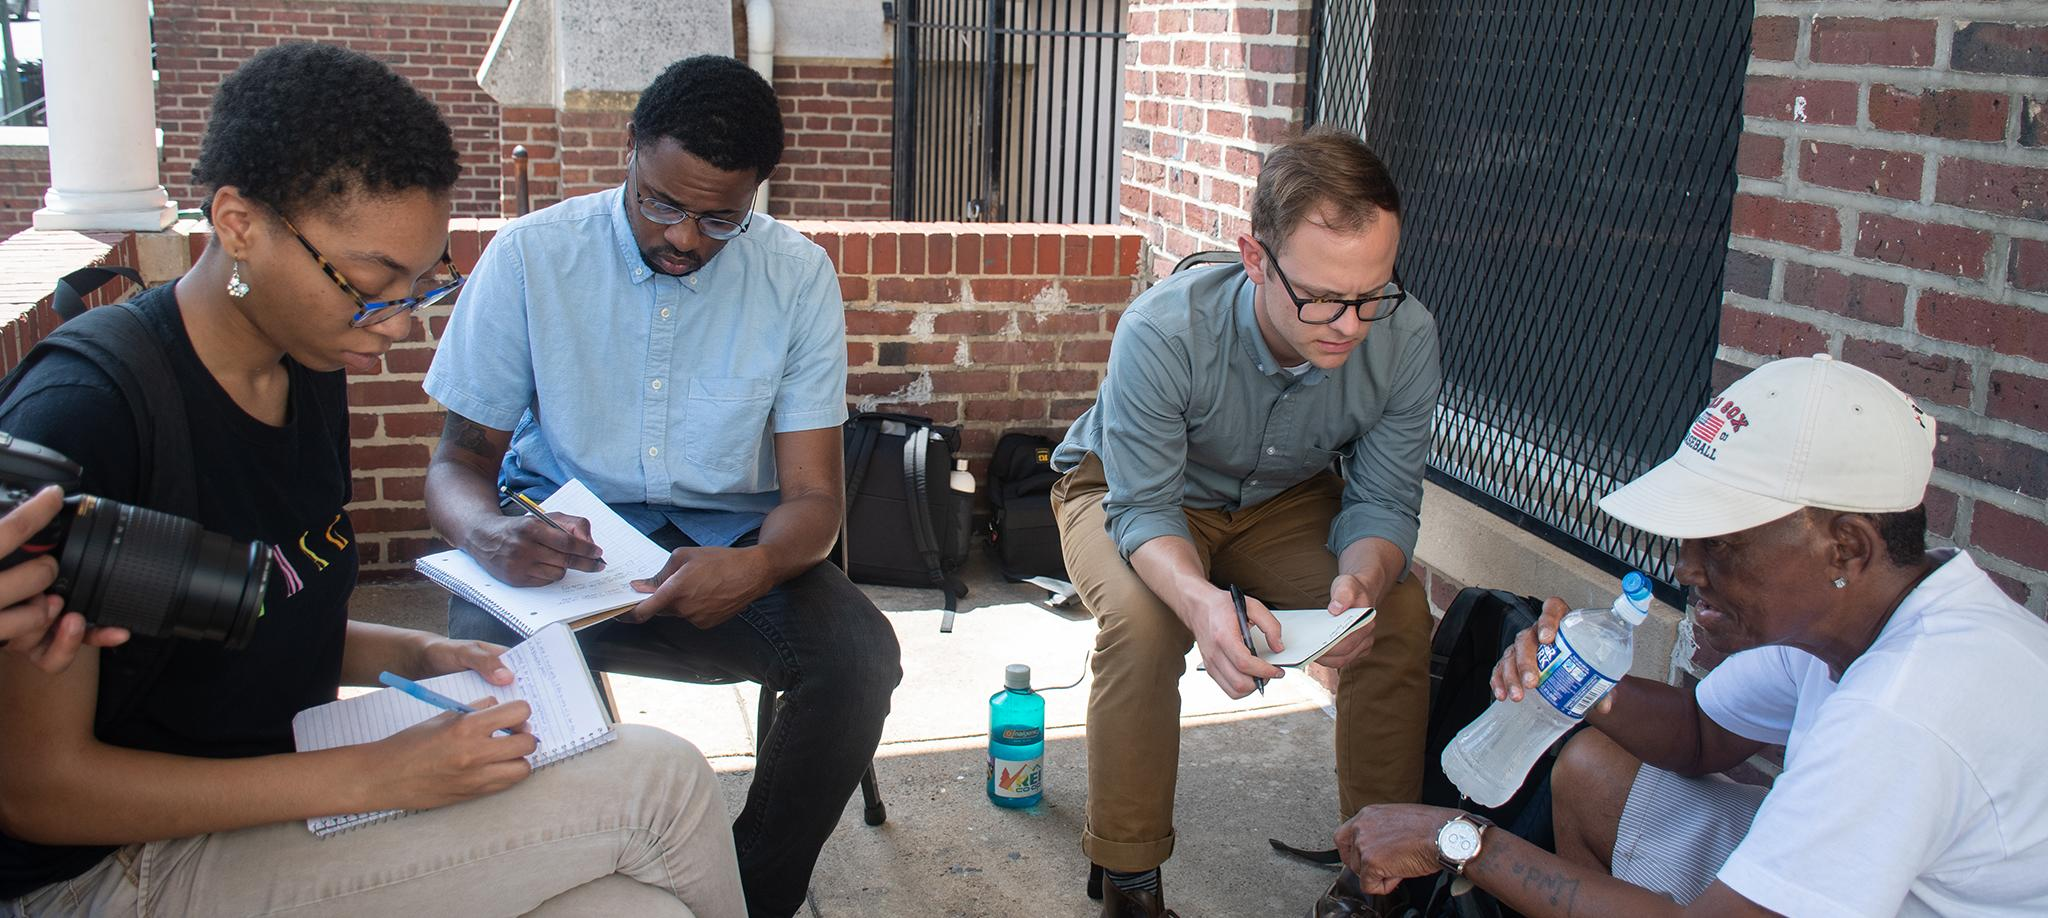 Howard Center students conducting interviews in Baltimore.